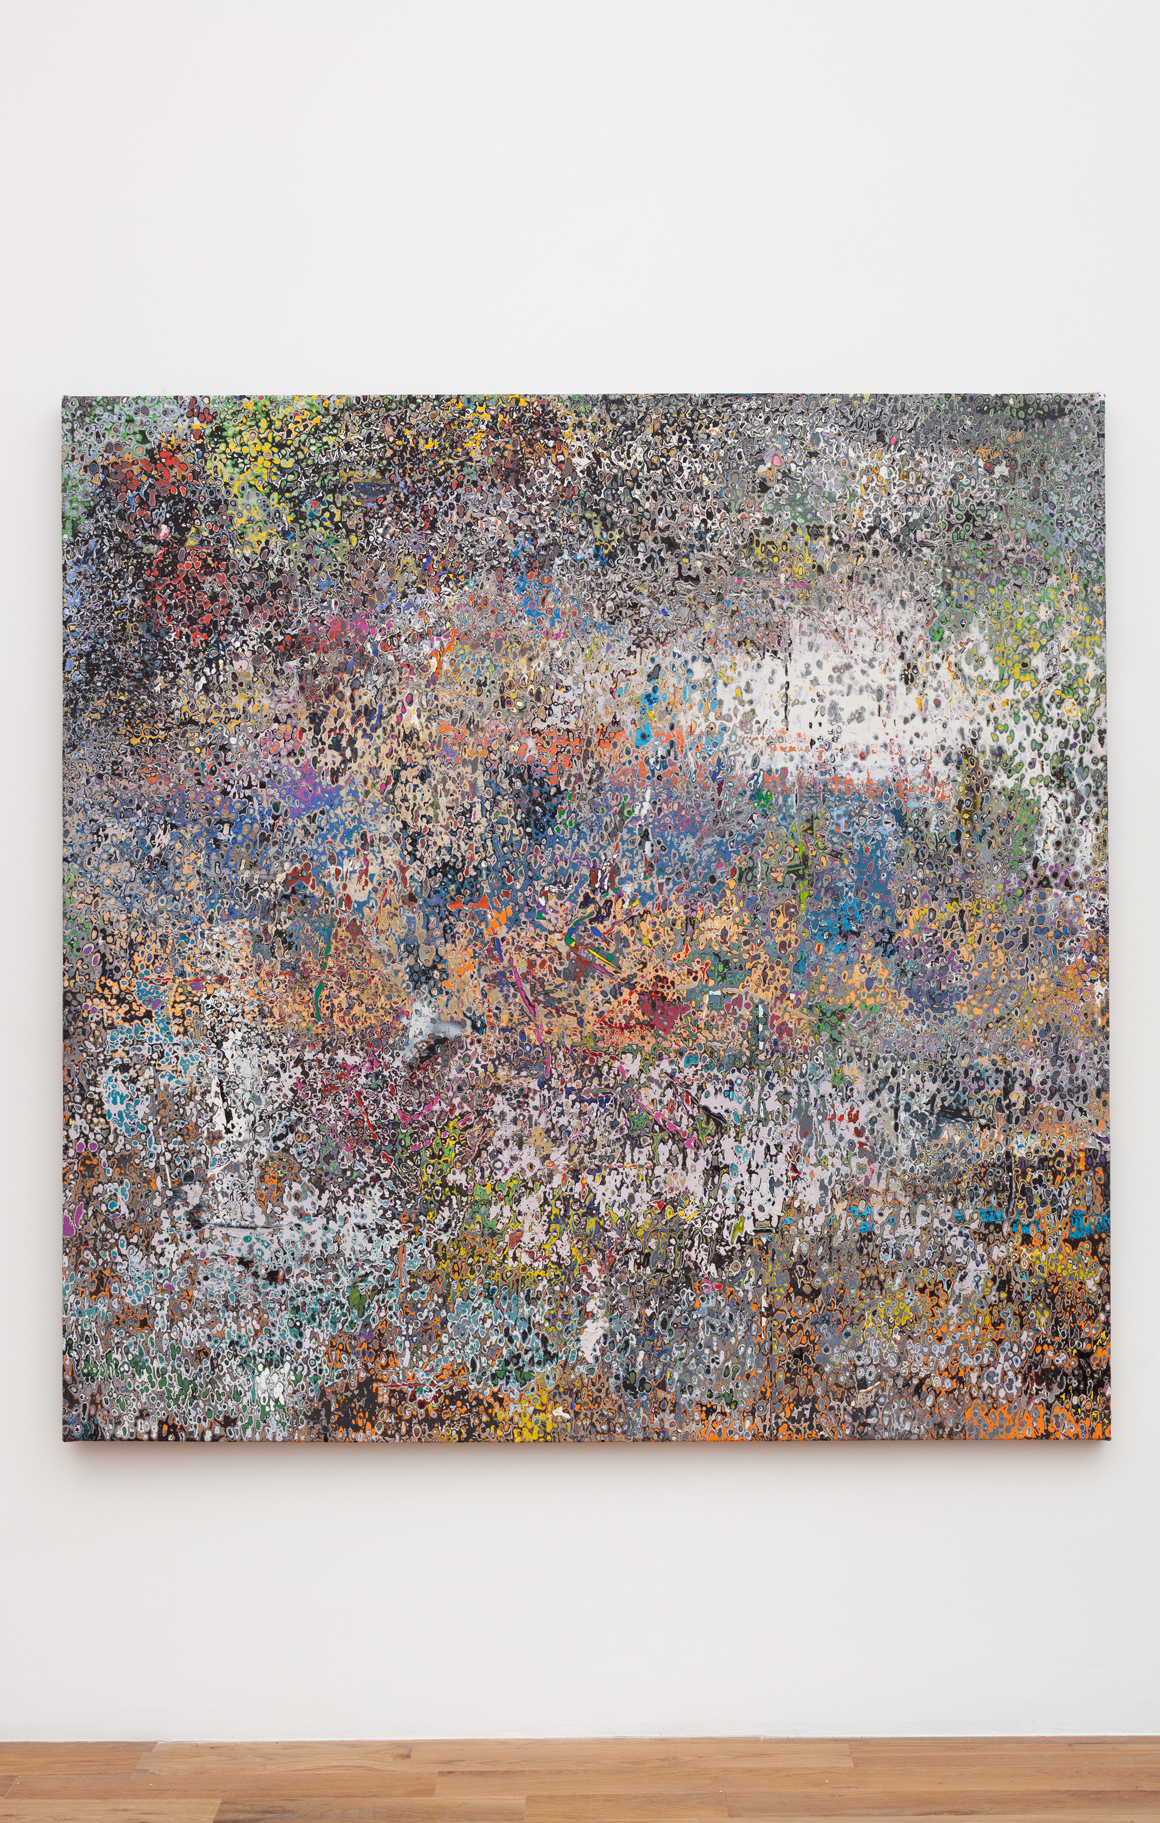 <p><em>Artforum April 2005</em><span class='media'>Acrylic on canvas</span>64.5 x 64.5 in (163.8 x 163.8 cm)<br>2016<br></p>